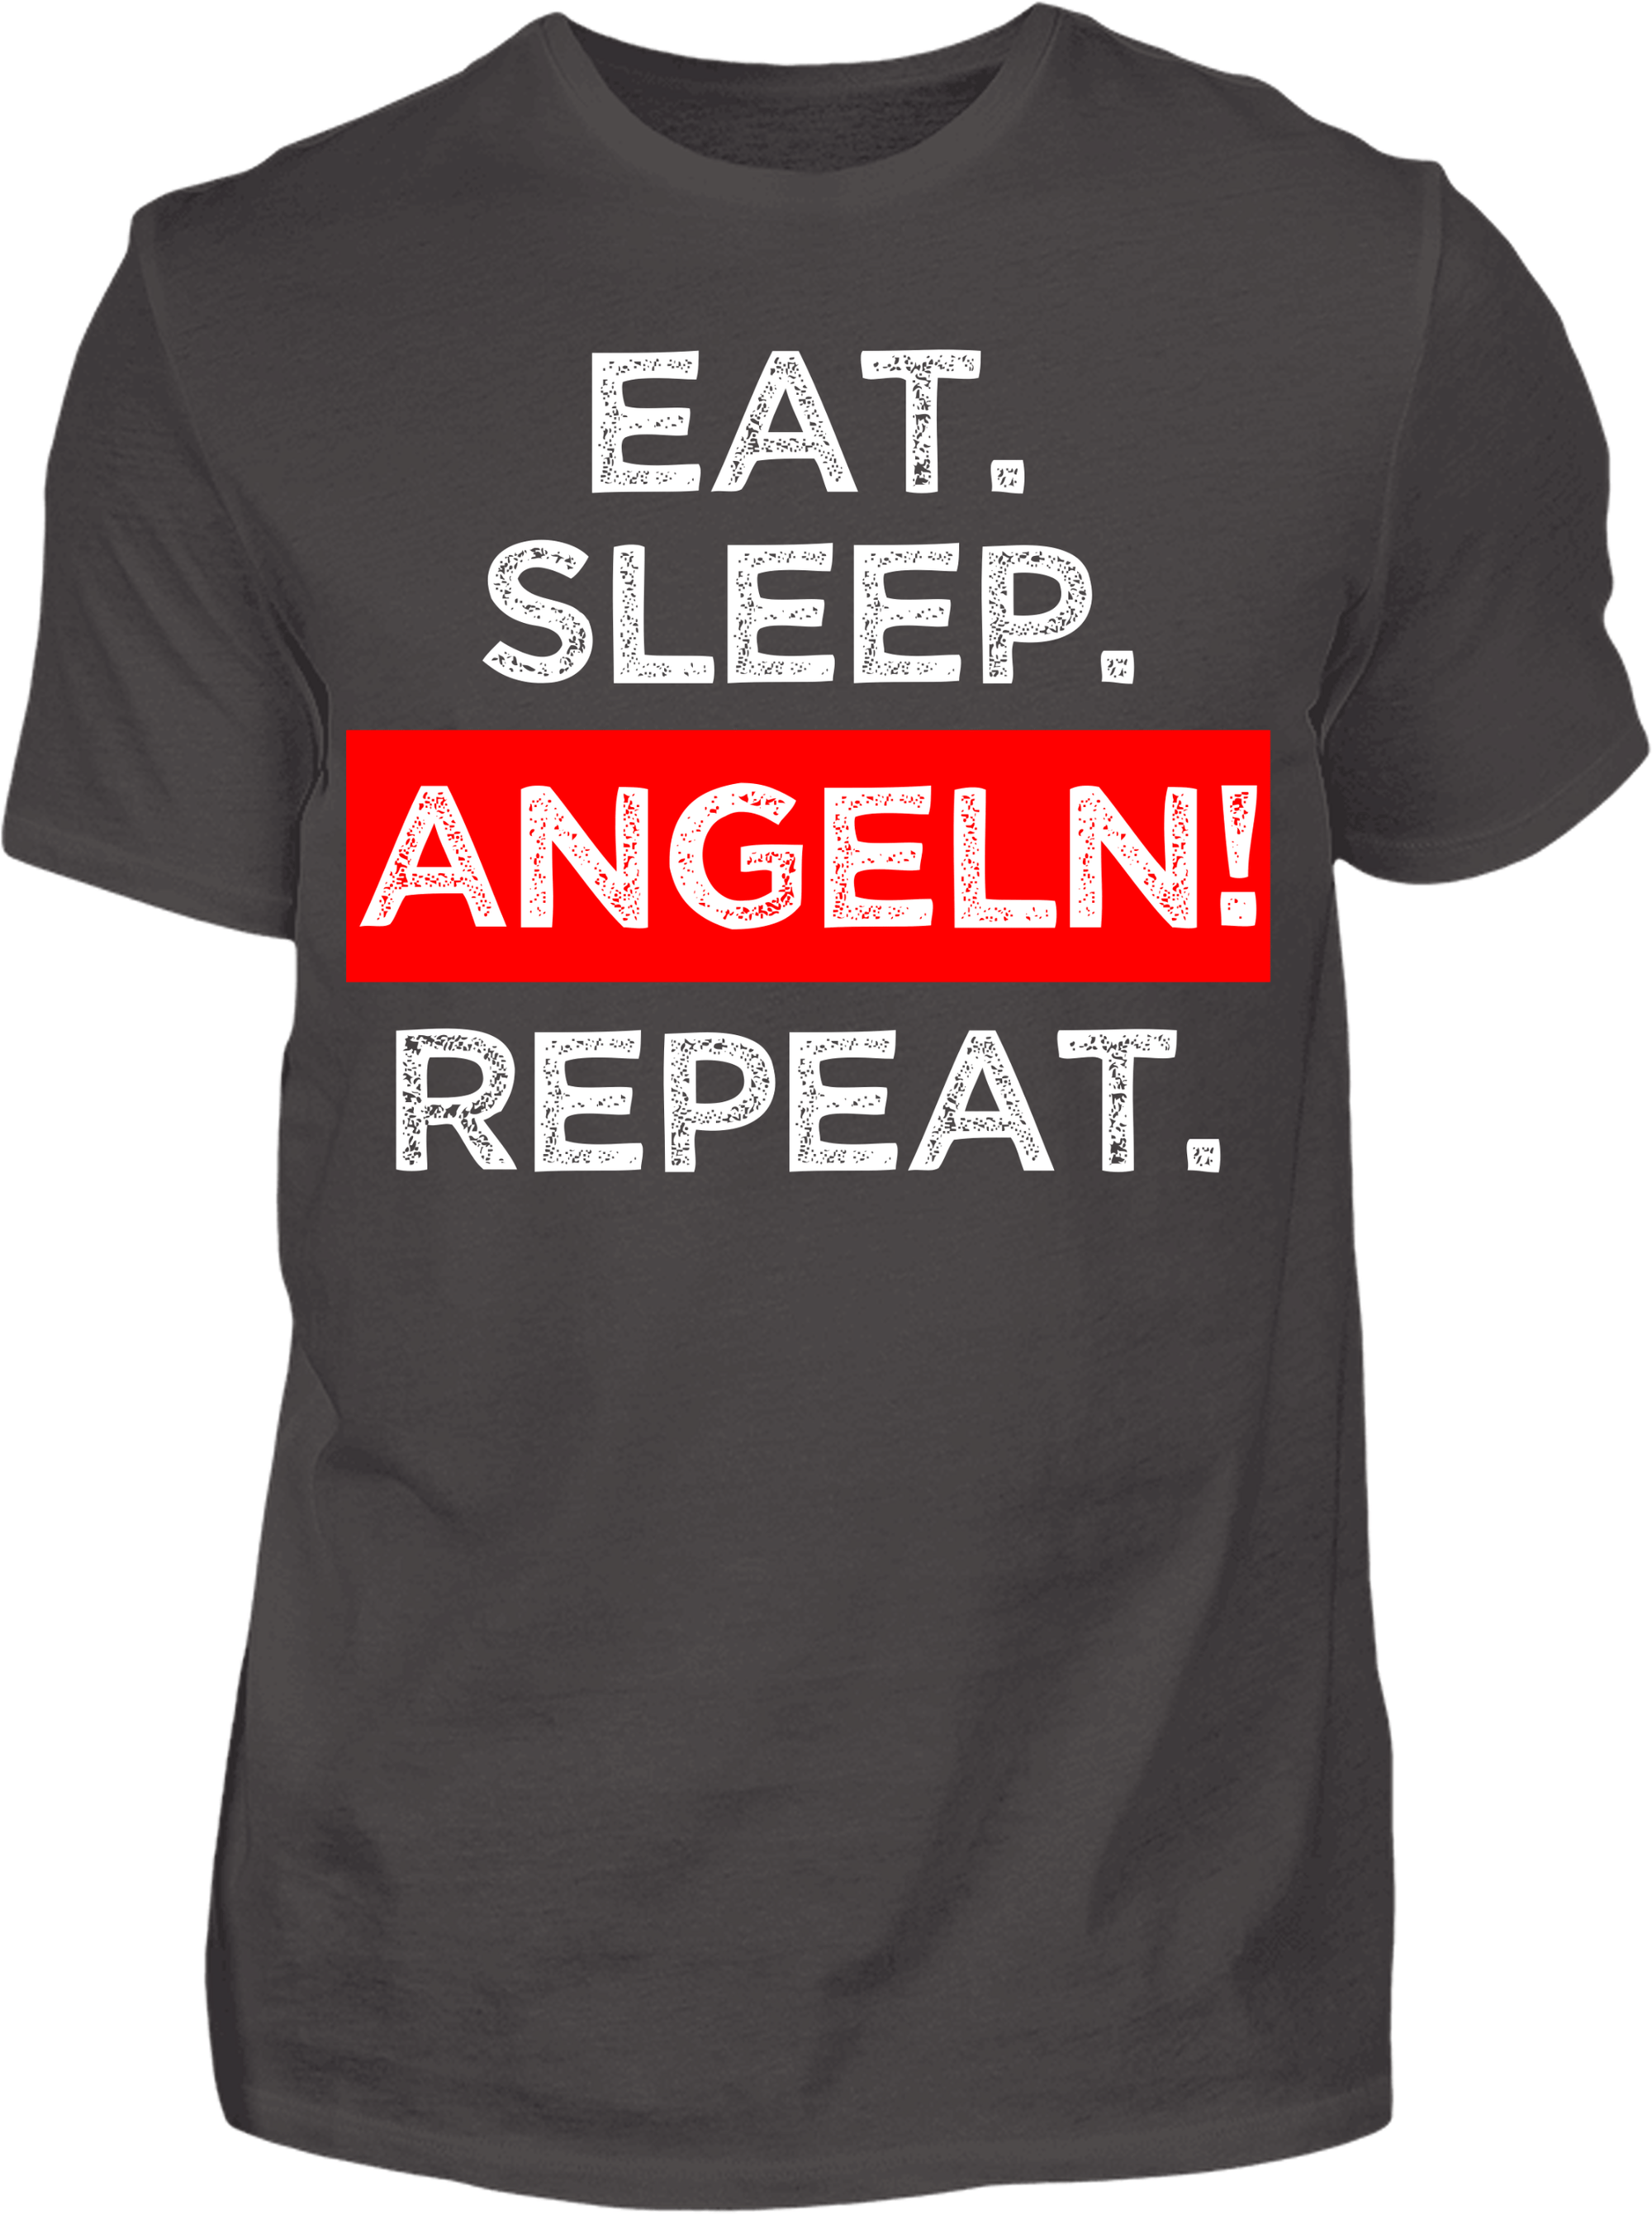 Eat. Sleep. Angeln! Repeat. T-Shirt - Kreisligahelden.de